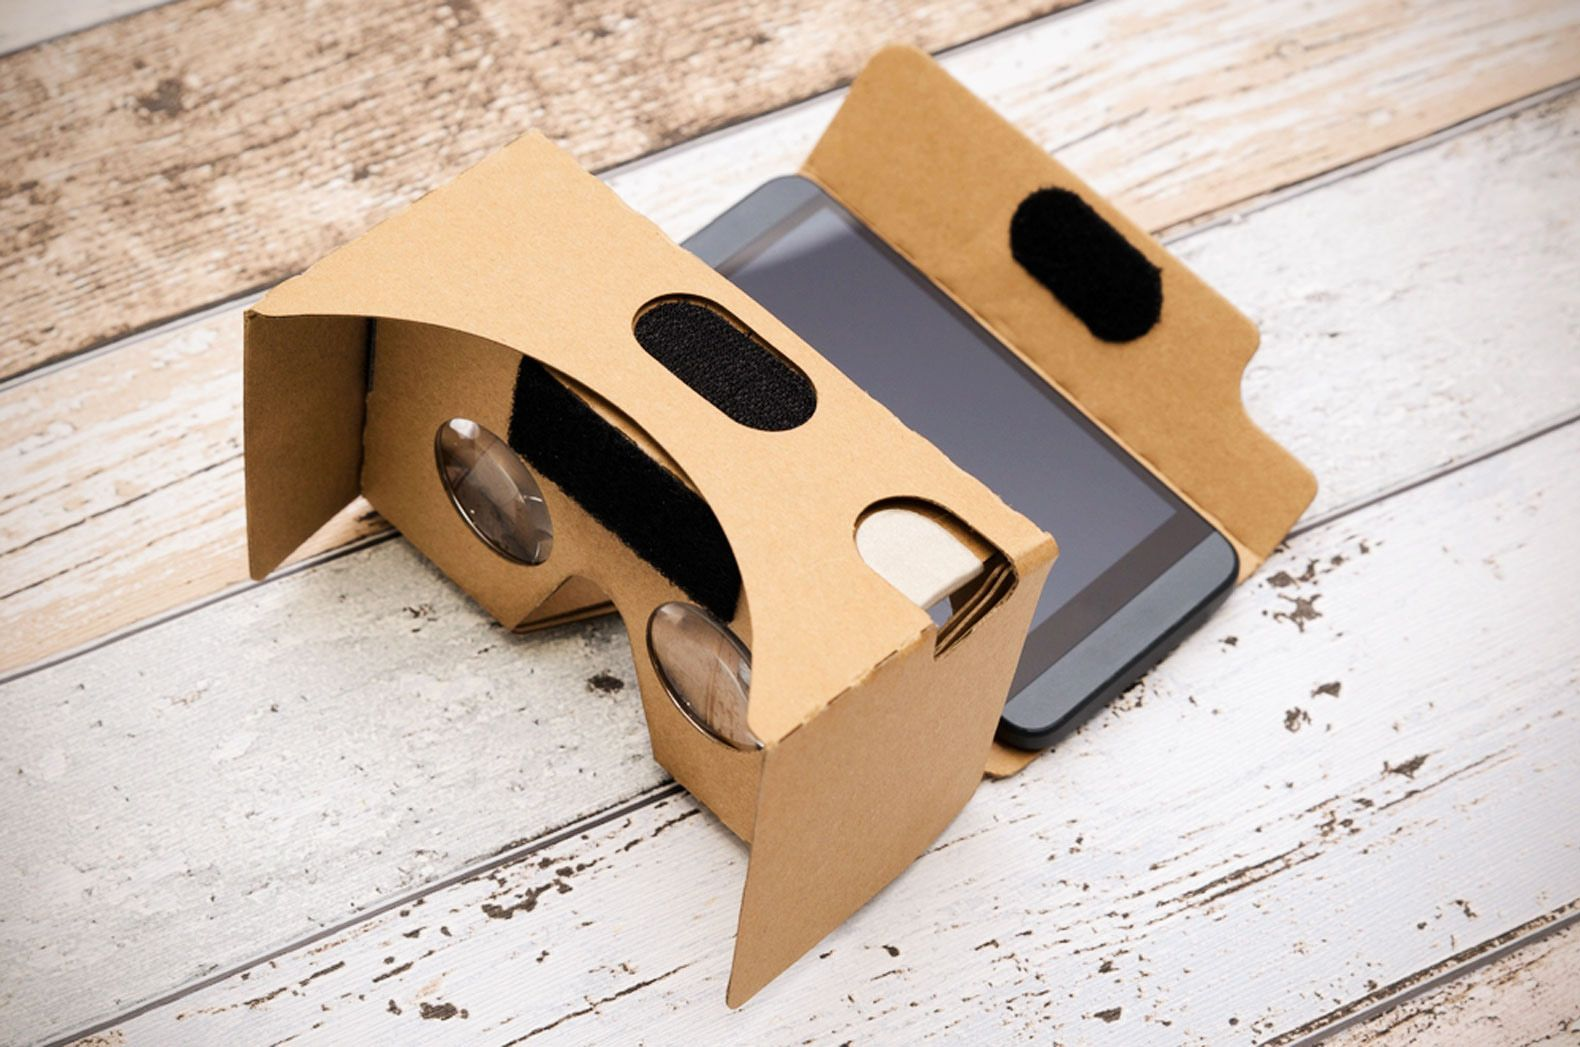 Because of its simple design, Google Cardboard can be used with most smartphones.